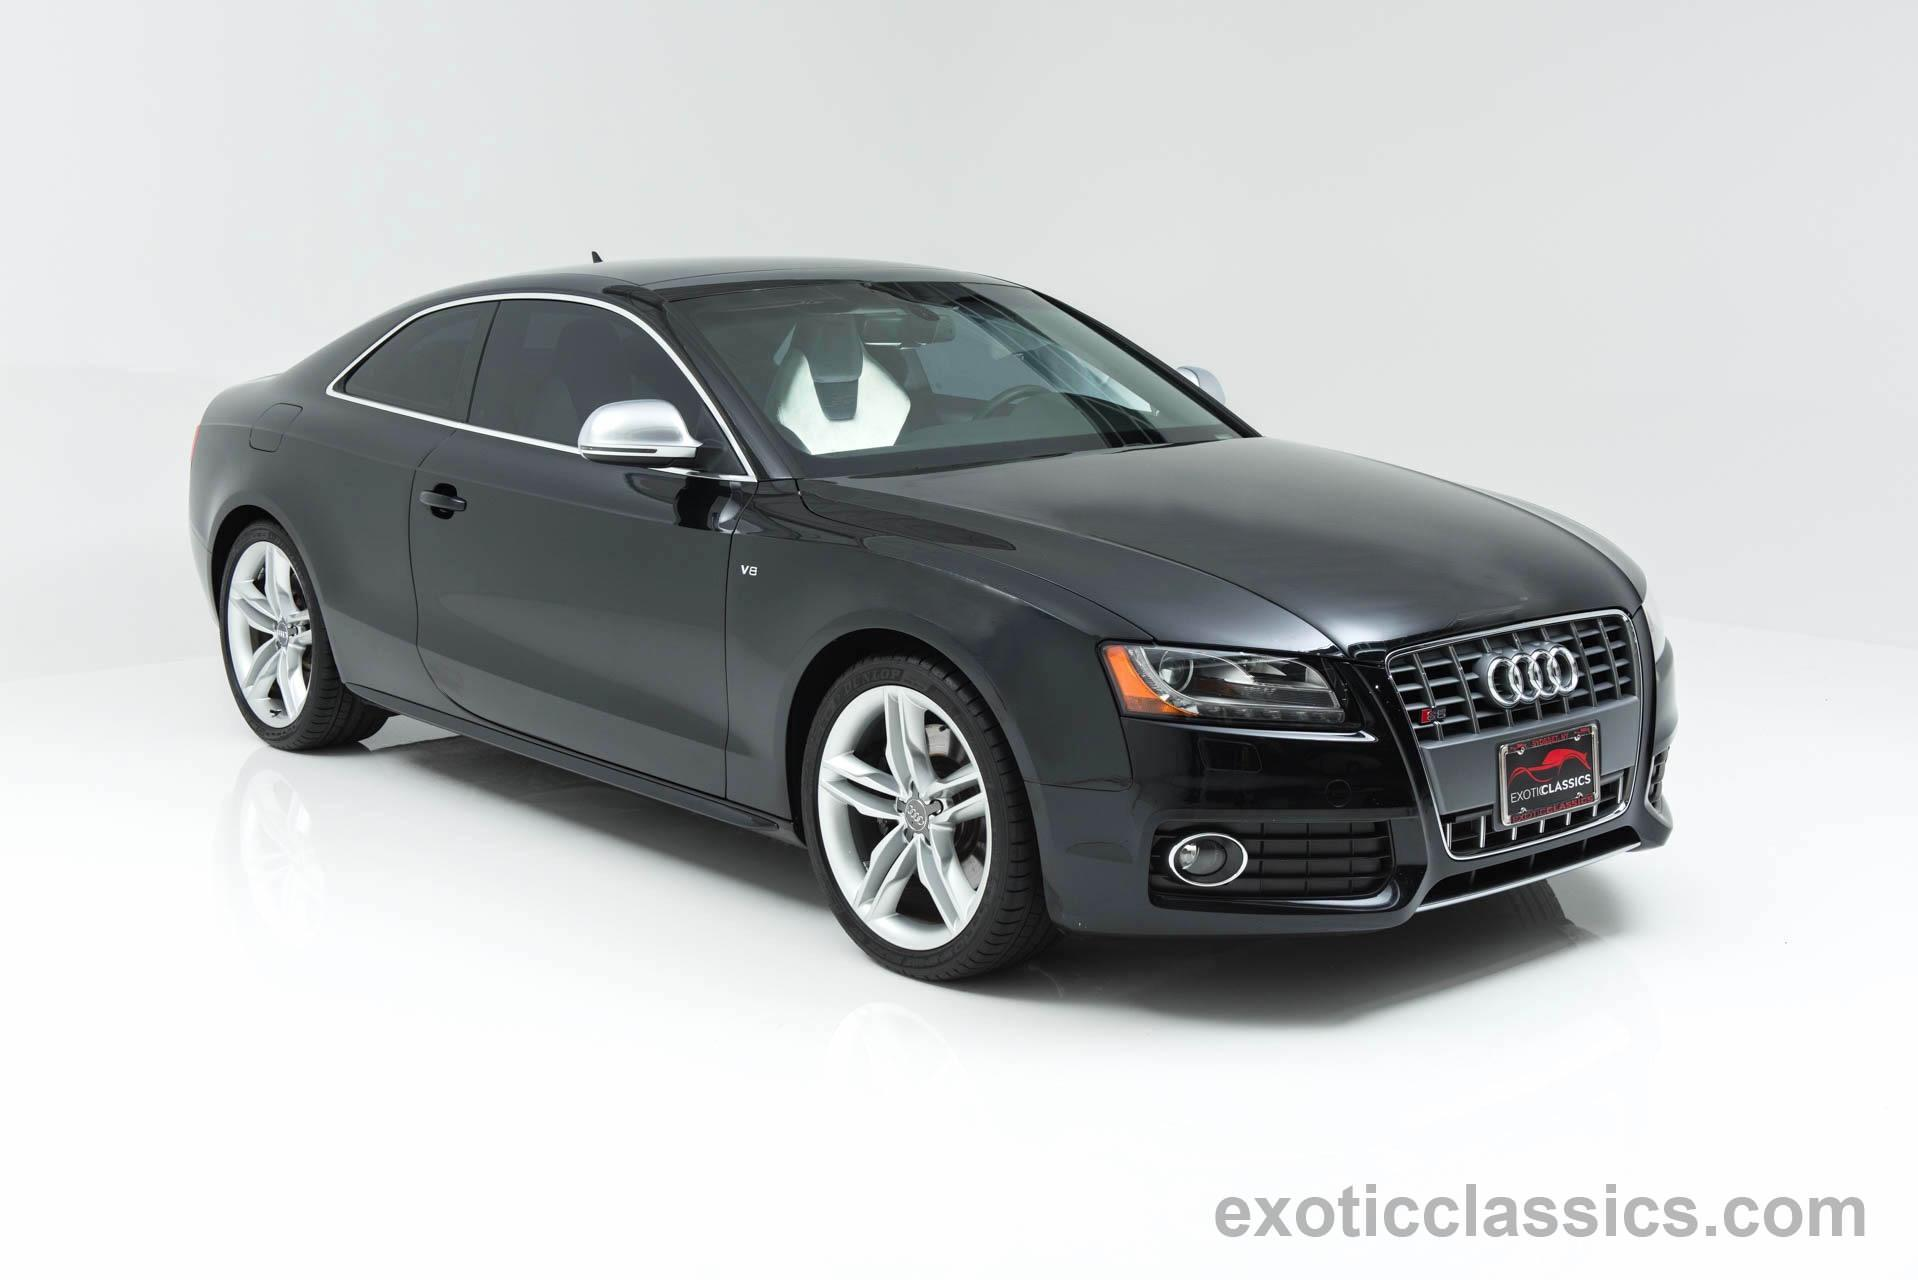 2008 audi s5 quattro exotic classic car dealership new. Black Bedroom Furniture Sets. Home Design Ideas